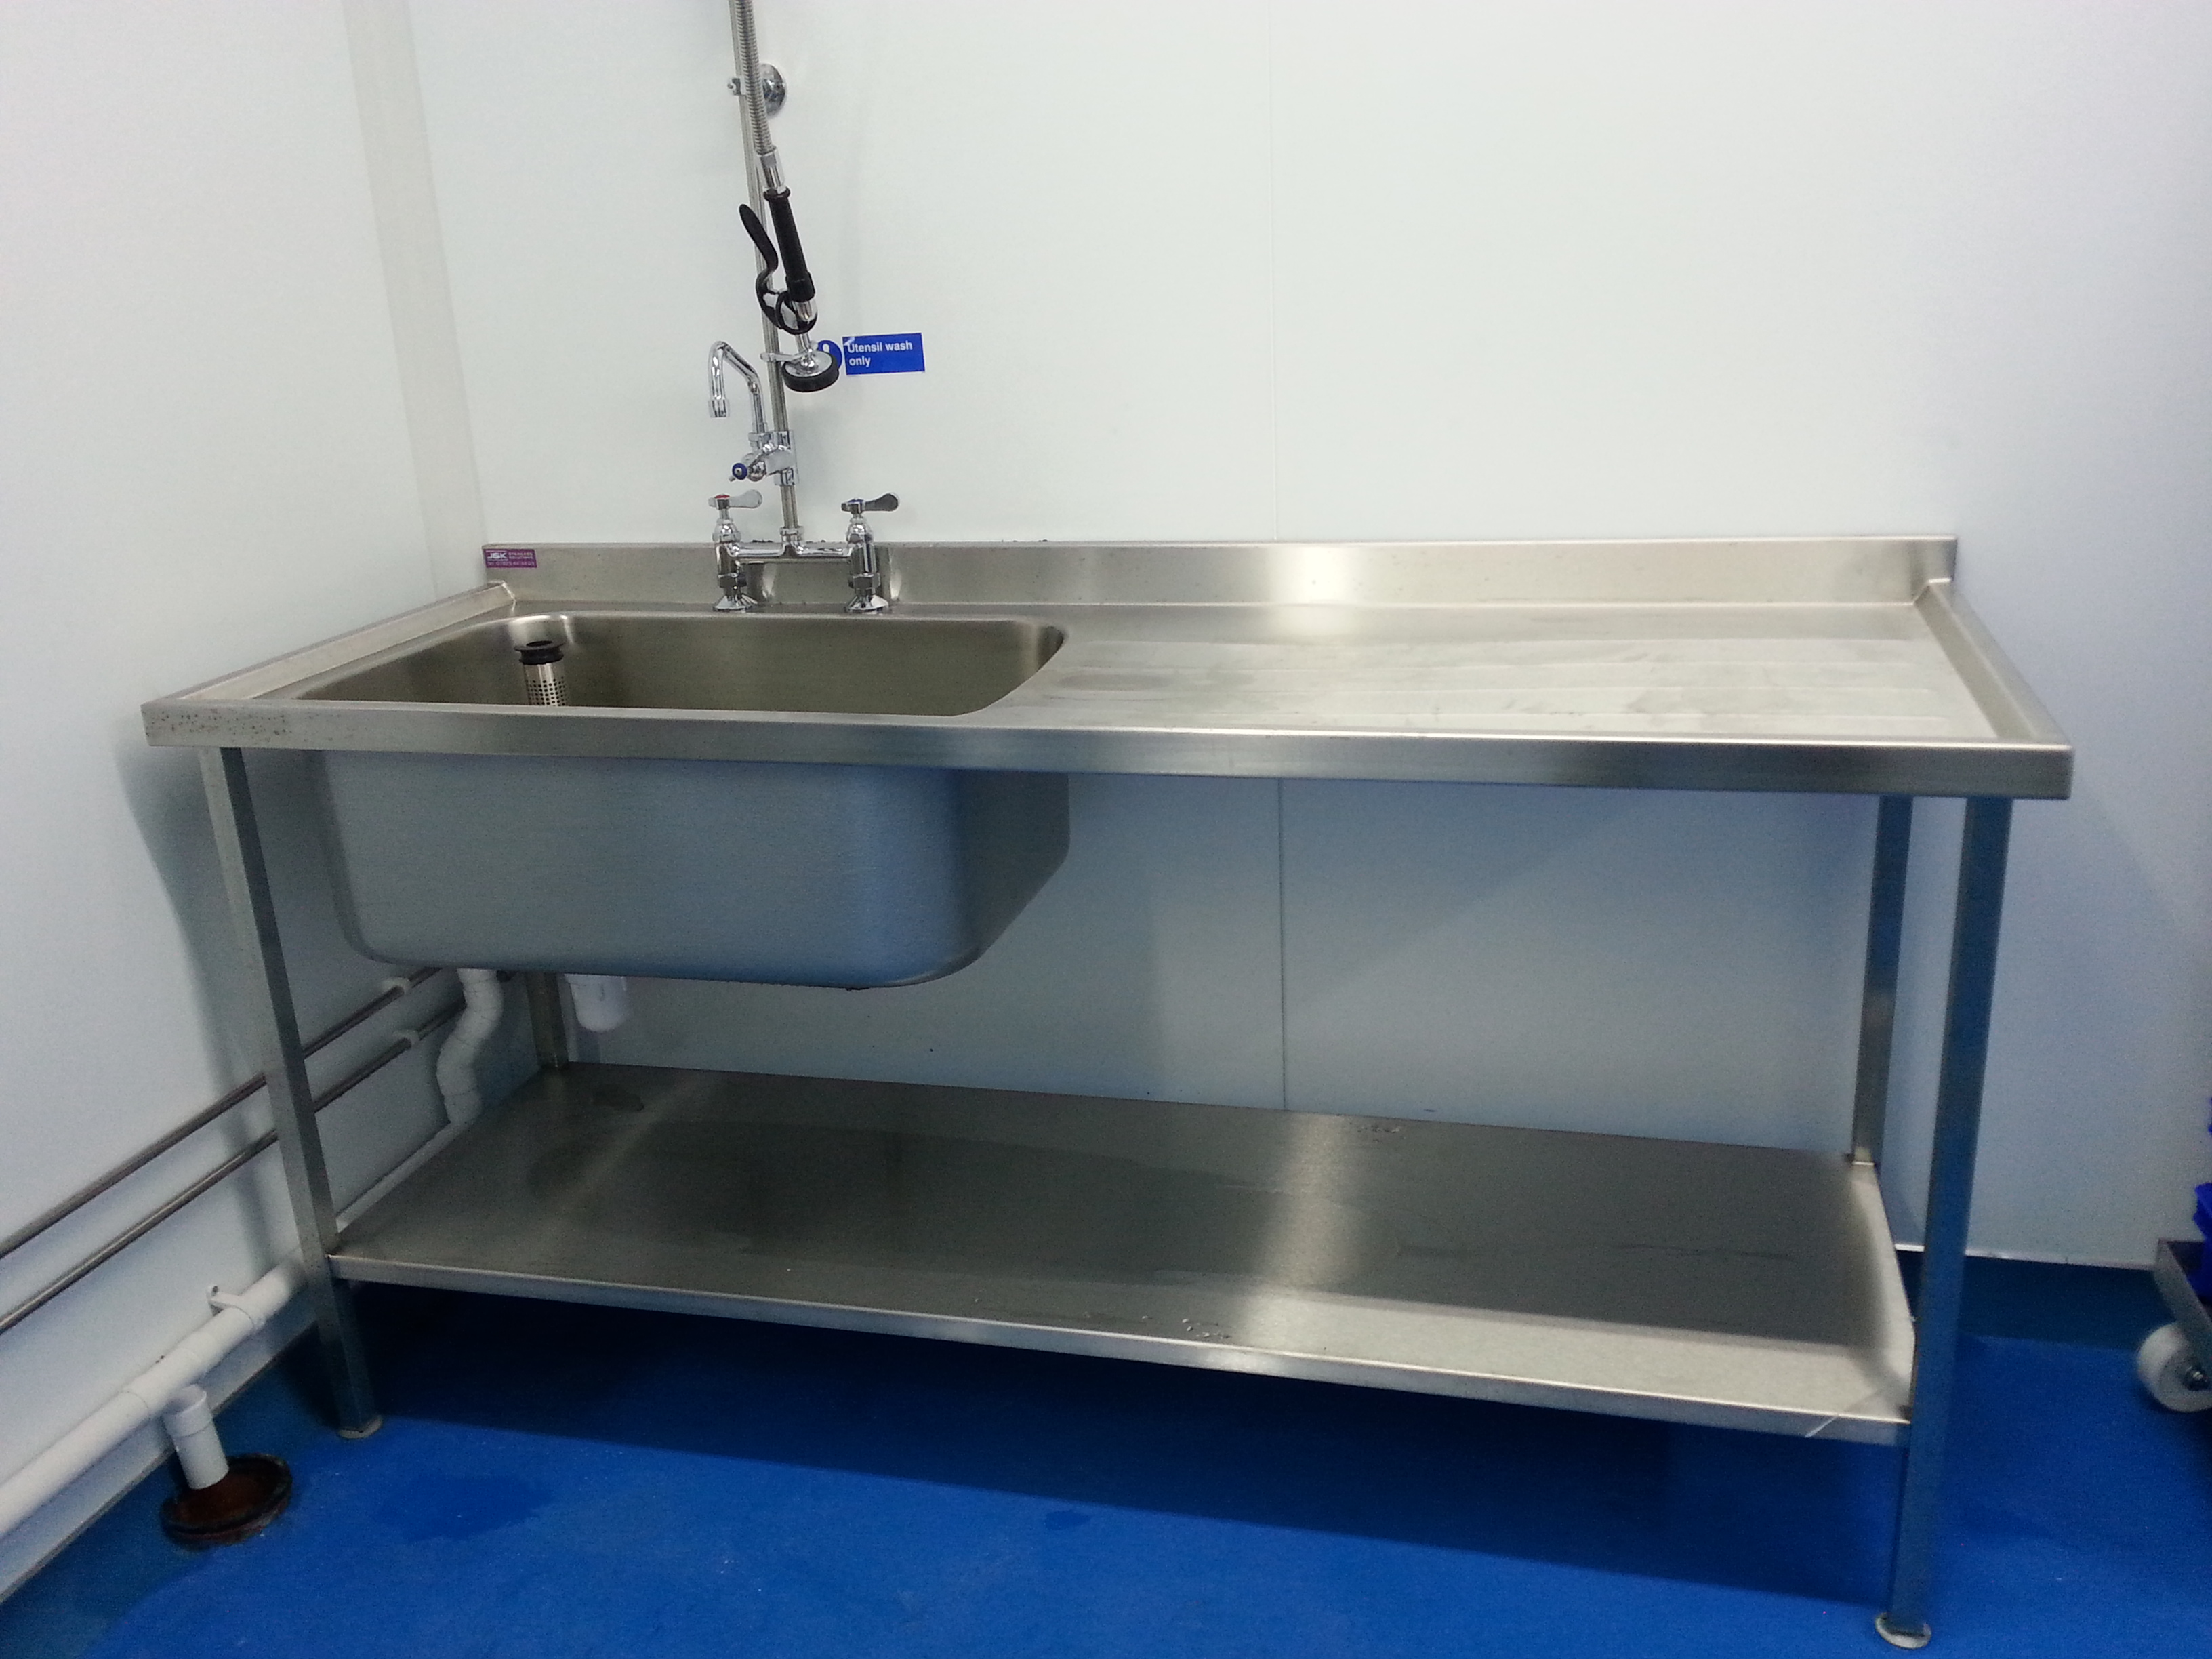 Catering Sink by J&K Stainless Solutions Ltd